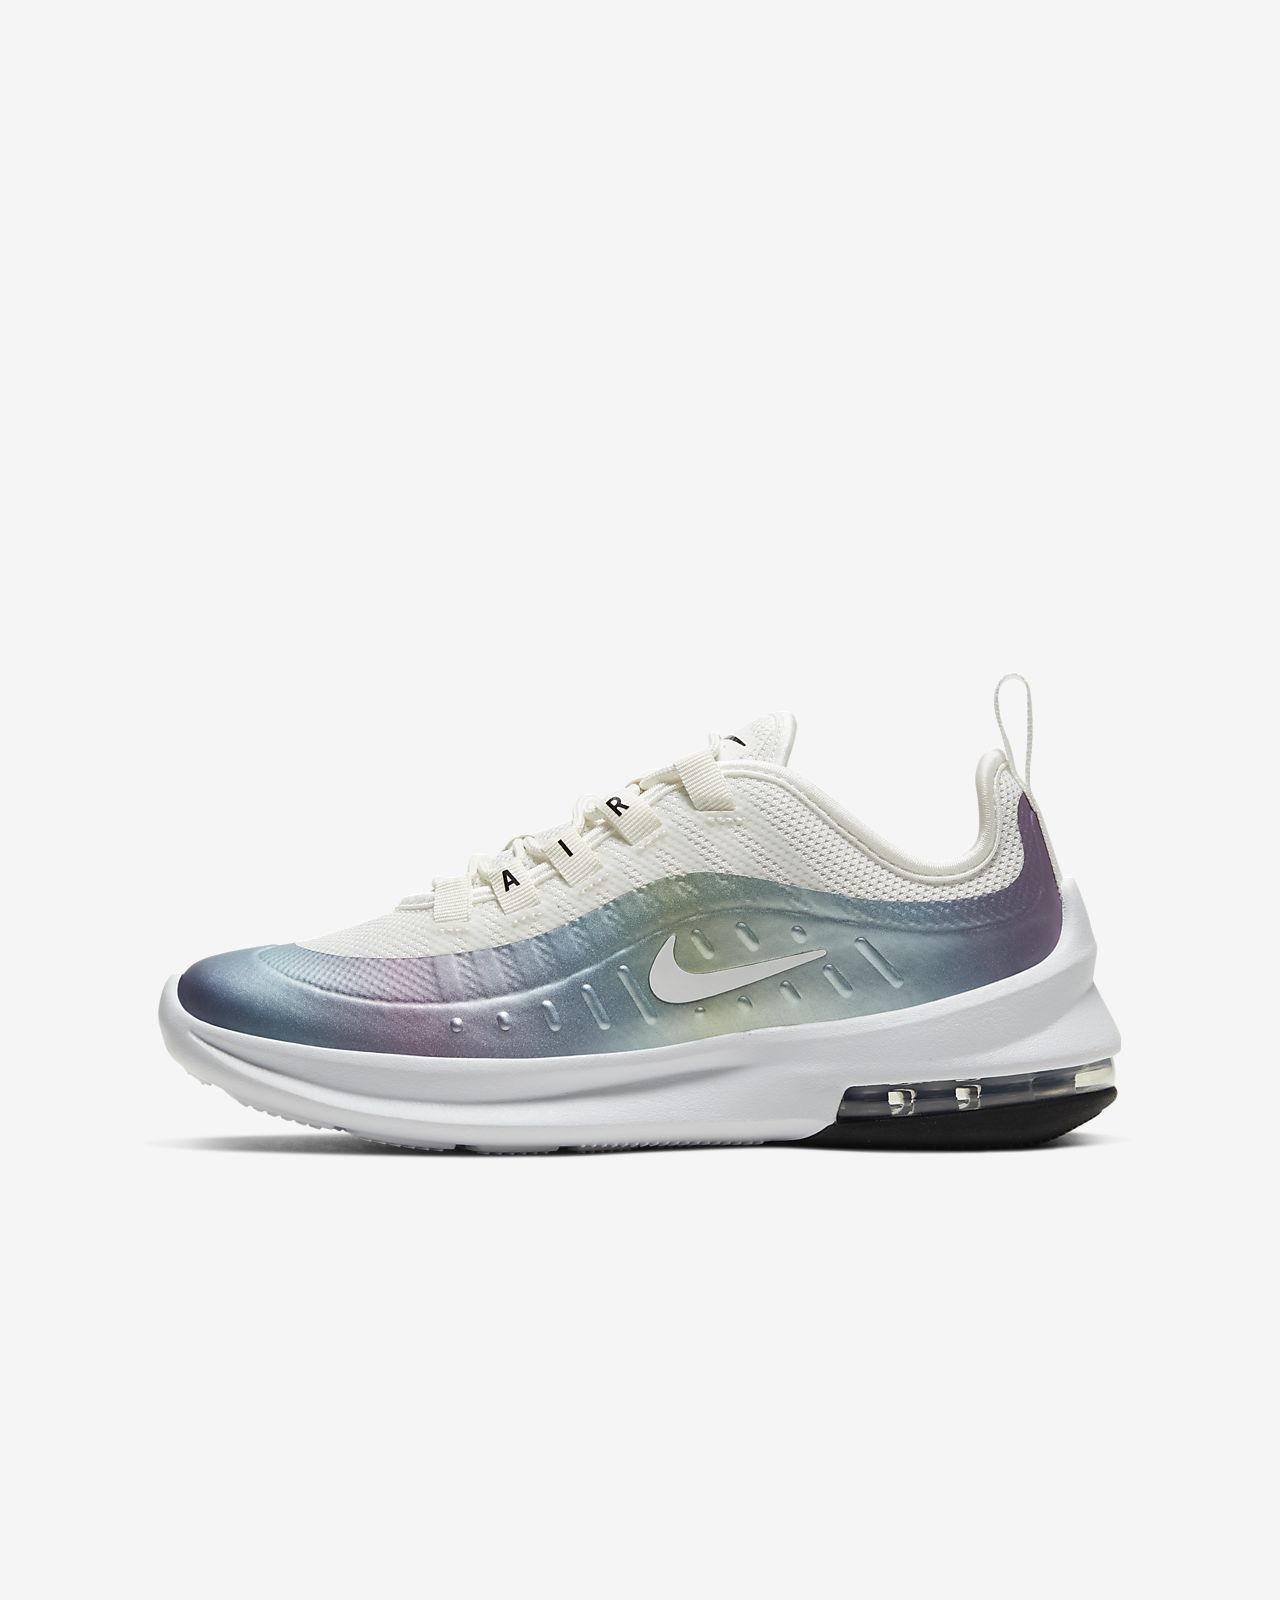 2018 sneakers good looking official Chaussure Nike Air Max Axis pour Enfant plus âgé. Nike CA